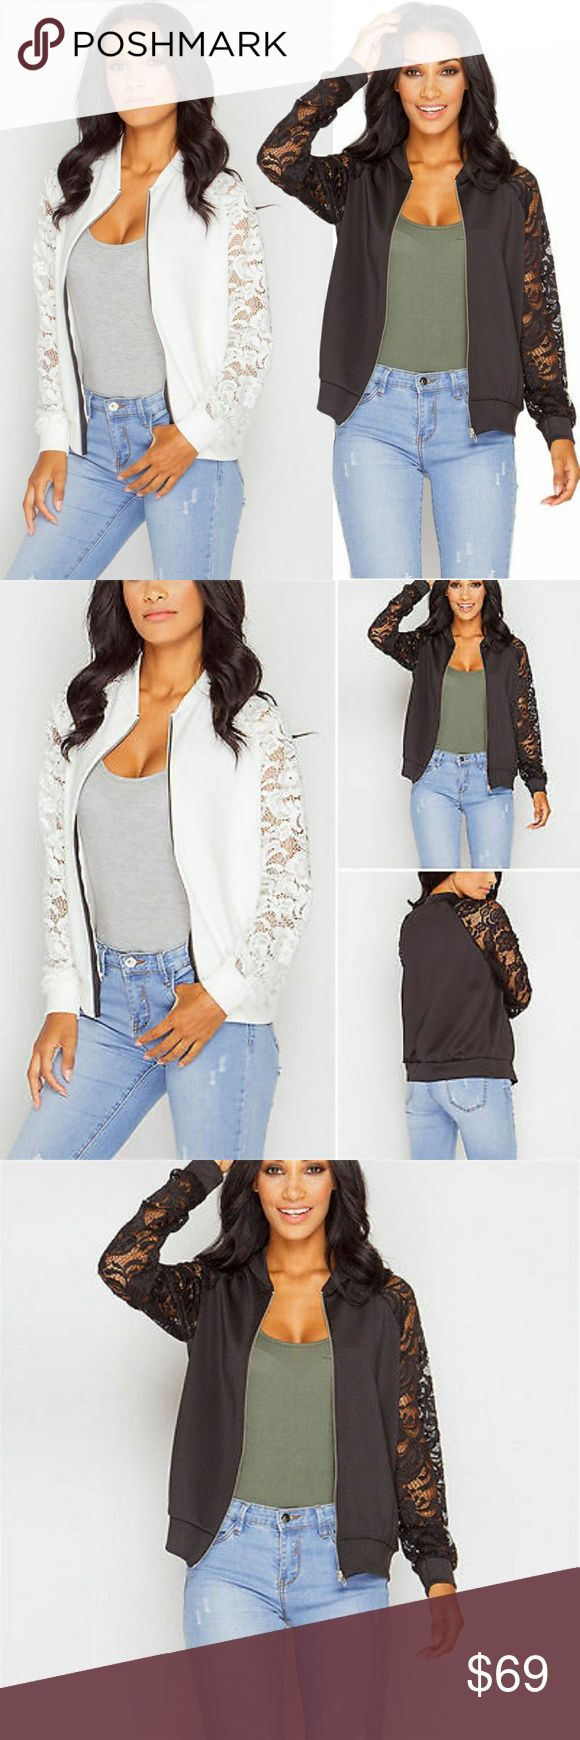 Cute Bomber Lace Jacket Womens Biker Celebrity Zip Up Coat Lace Long Sleeve Bomber Jacket Ladies Outwear   Shipping:5-12 business days   Comes in Small-2XL, please let me know size you want          ebus1088 Accessories